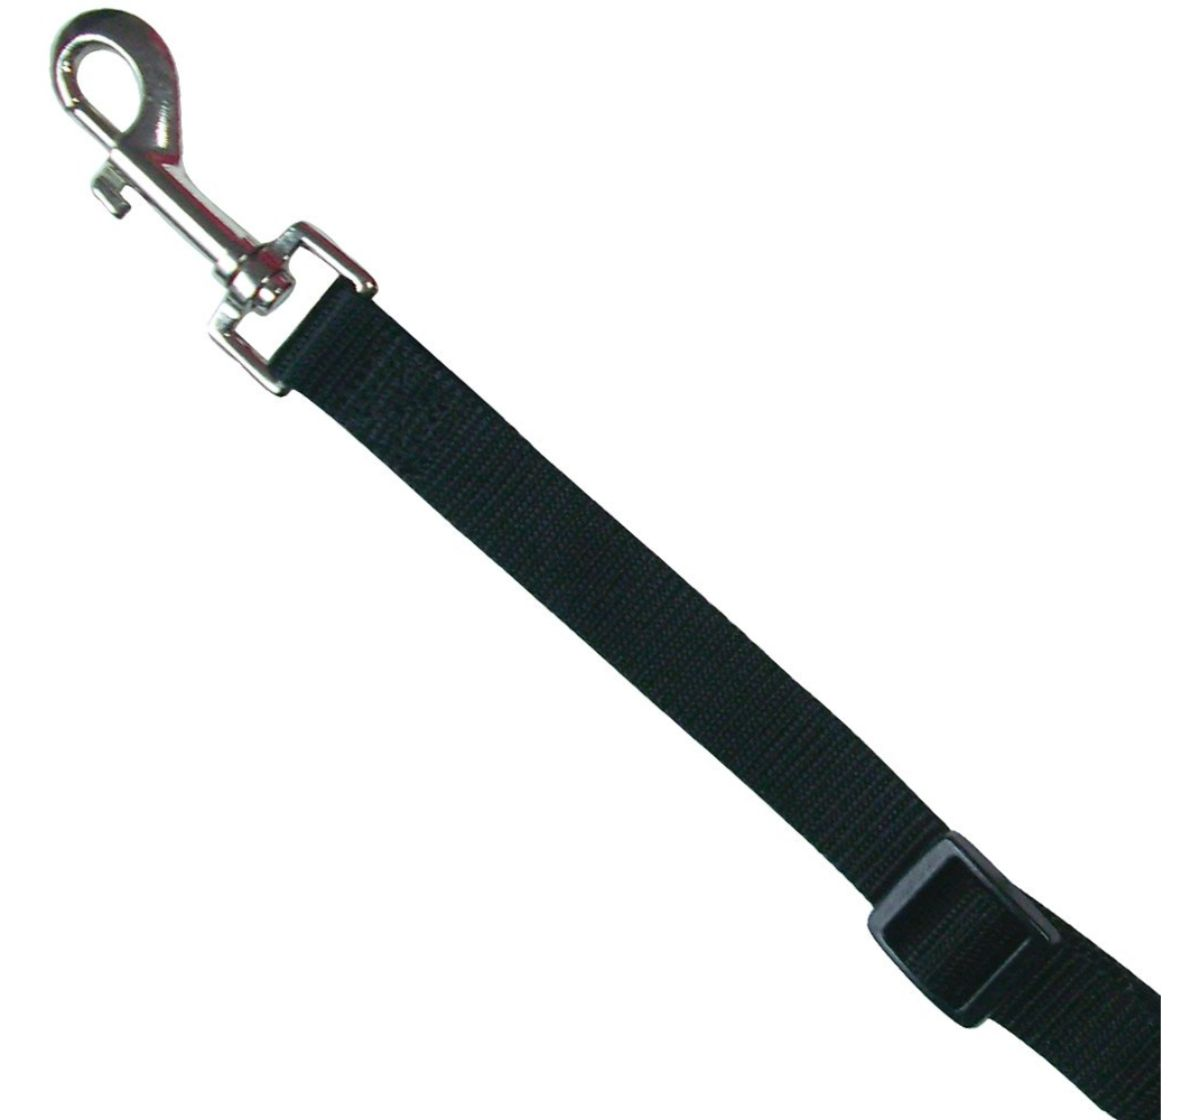 Trixie Classic Adjustable Leash Black - Medium & Large